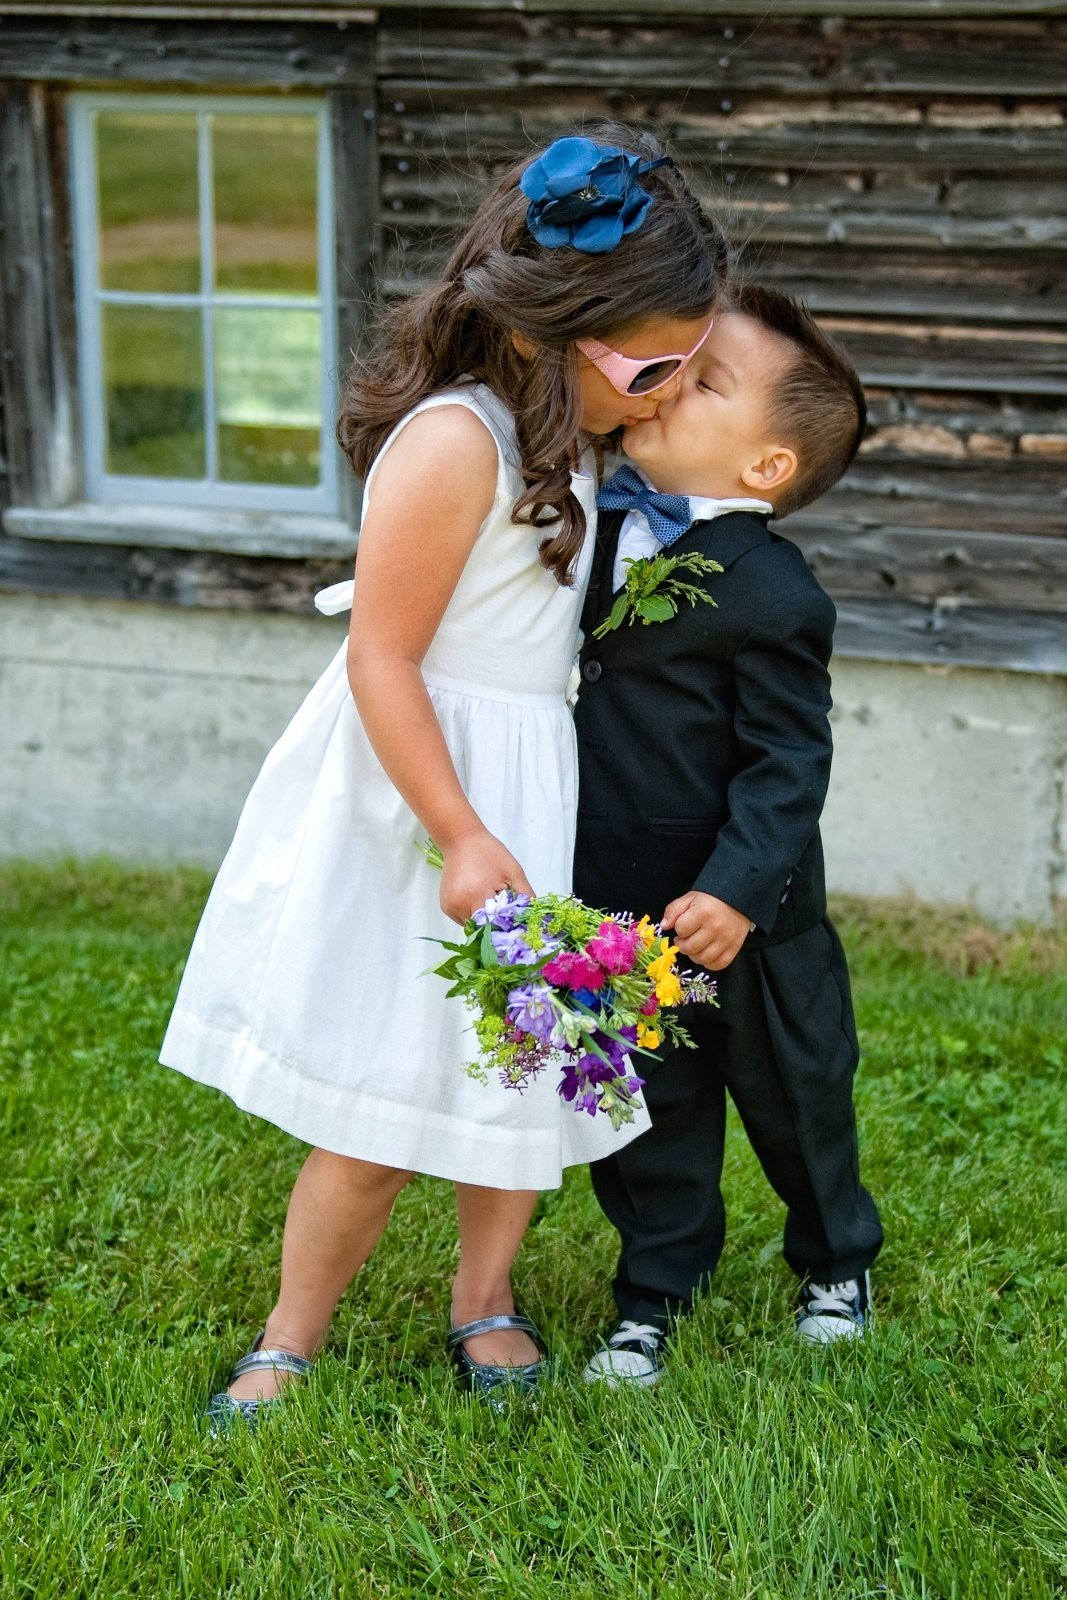 Offbeat Vermont wedding photographer